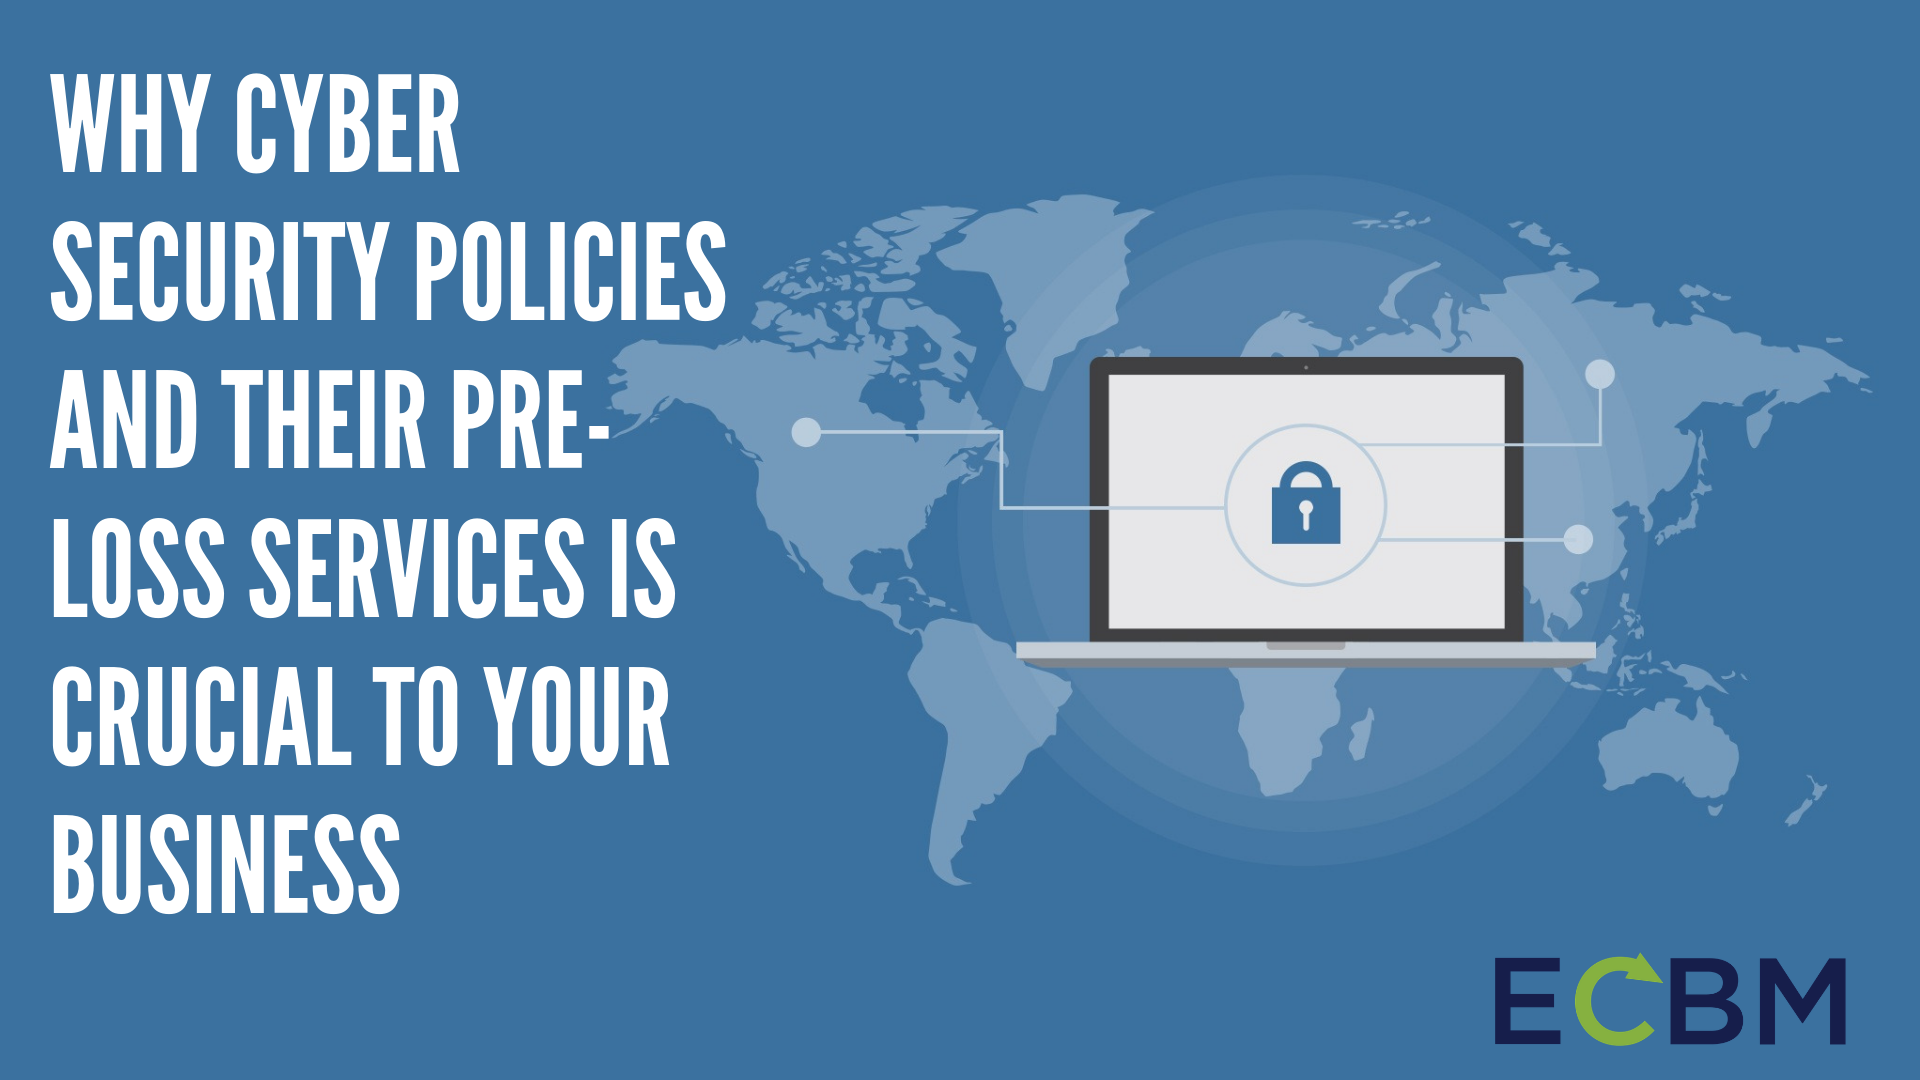 Why Cyber Security Policies And Their Pre-loss Services Is Crucial To Your Business